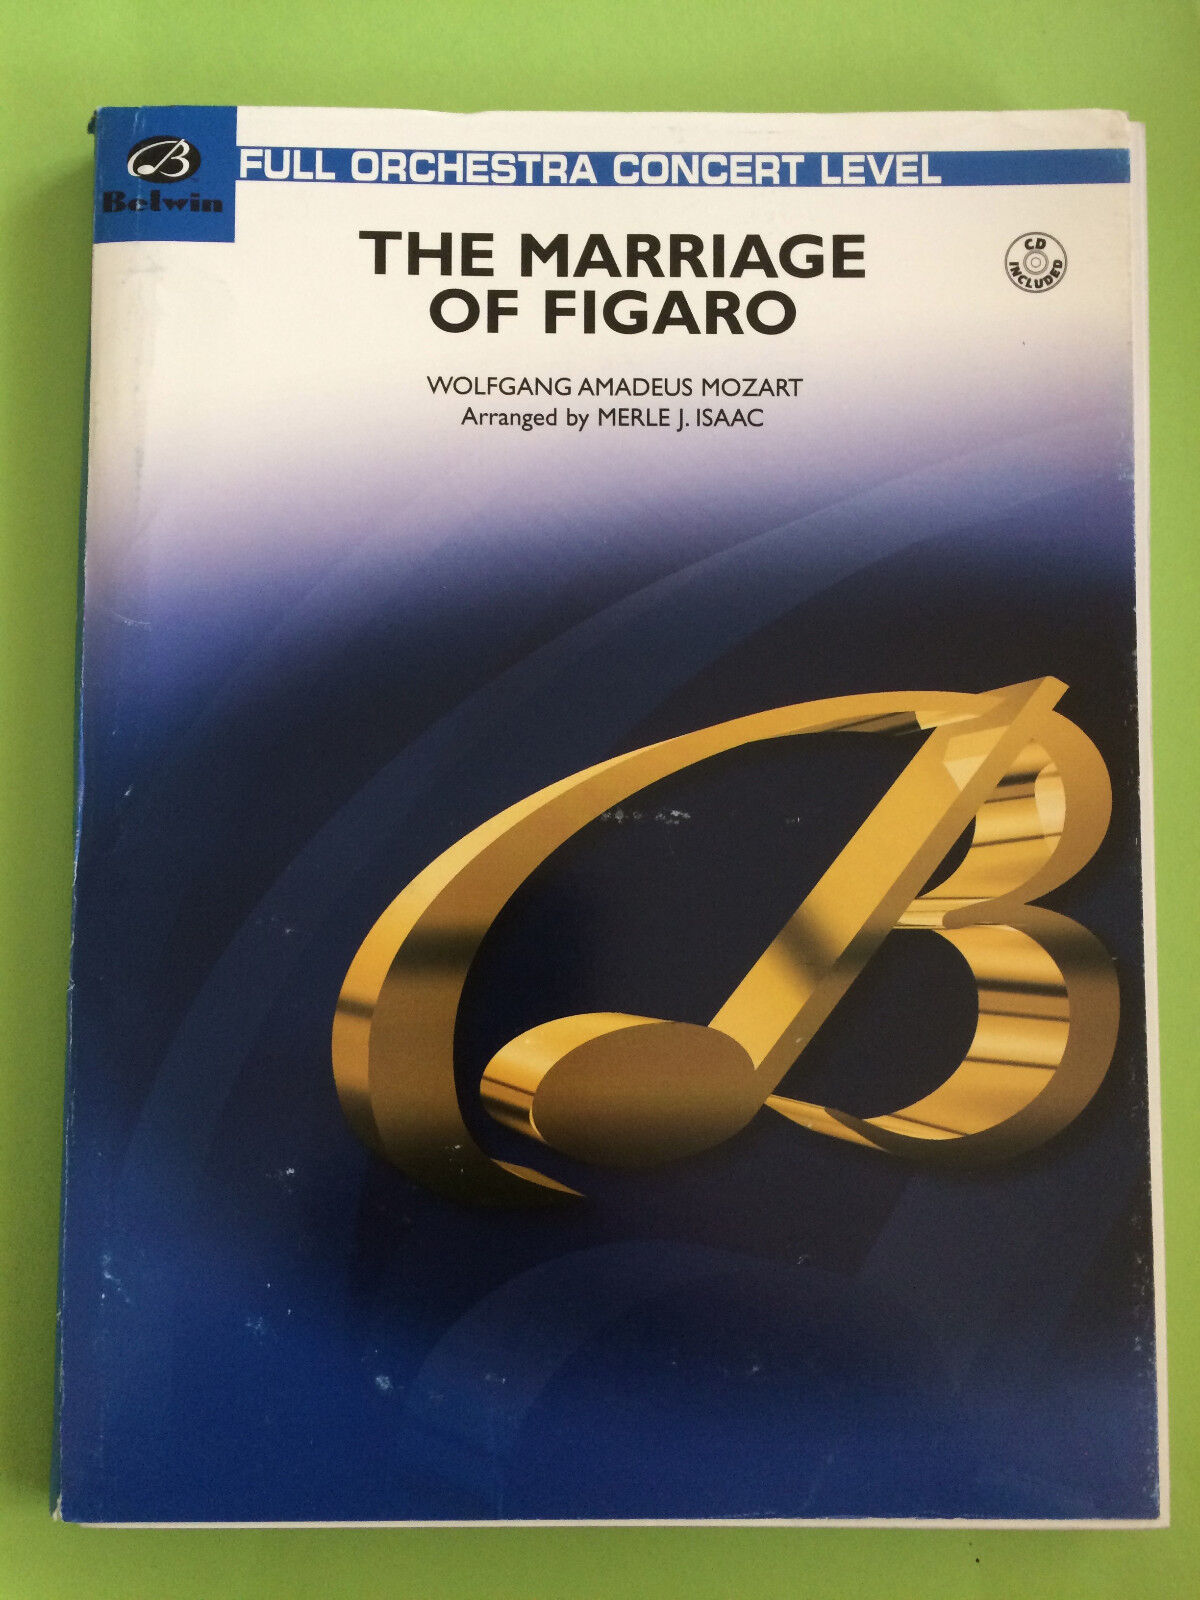 The Marriage Of Figaro, Mozart, arr. Merle J. Isaac, Full Orchestra